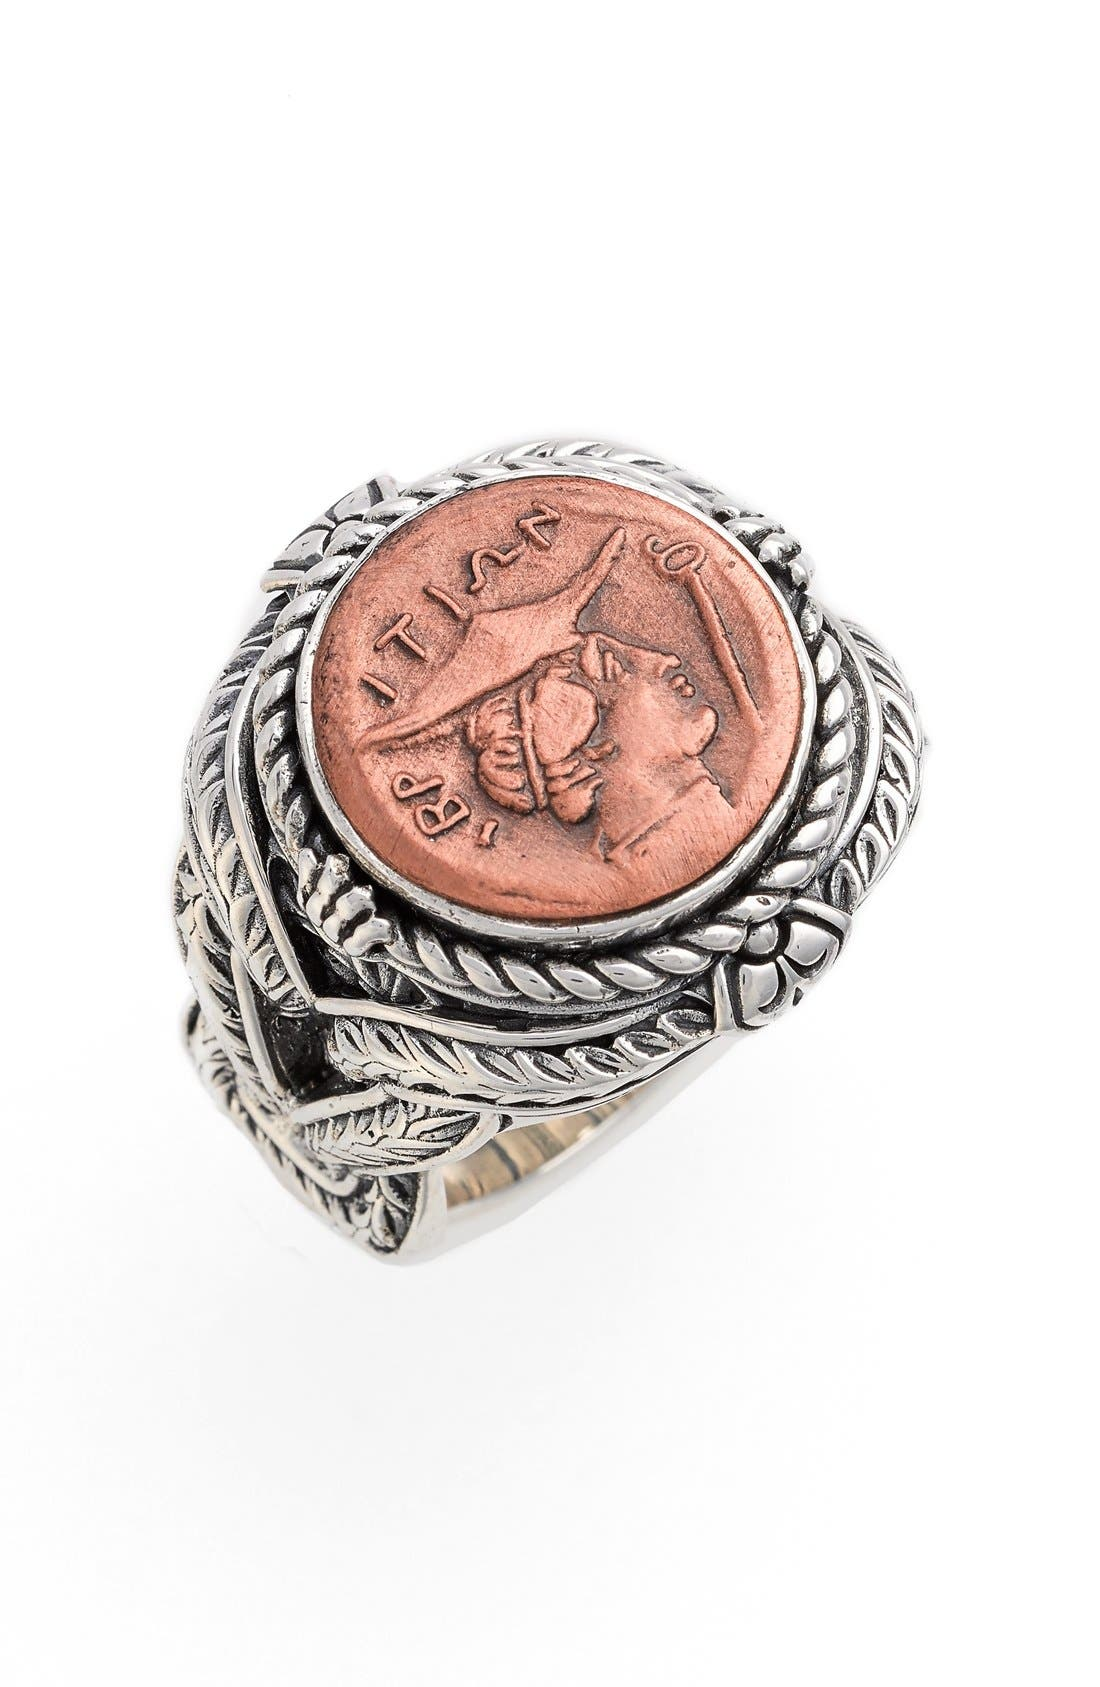 'Aeolus - Hermes' Coin Ring,                             Main thumbnail 1, color,                             COPPER/ SILVER